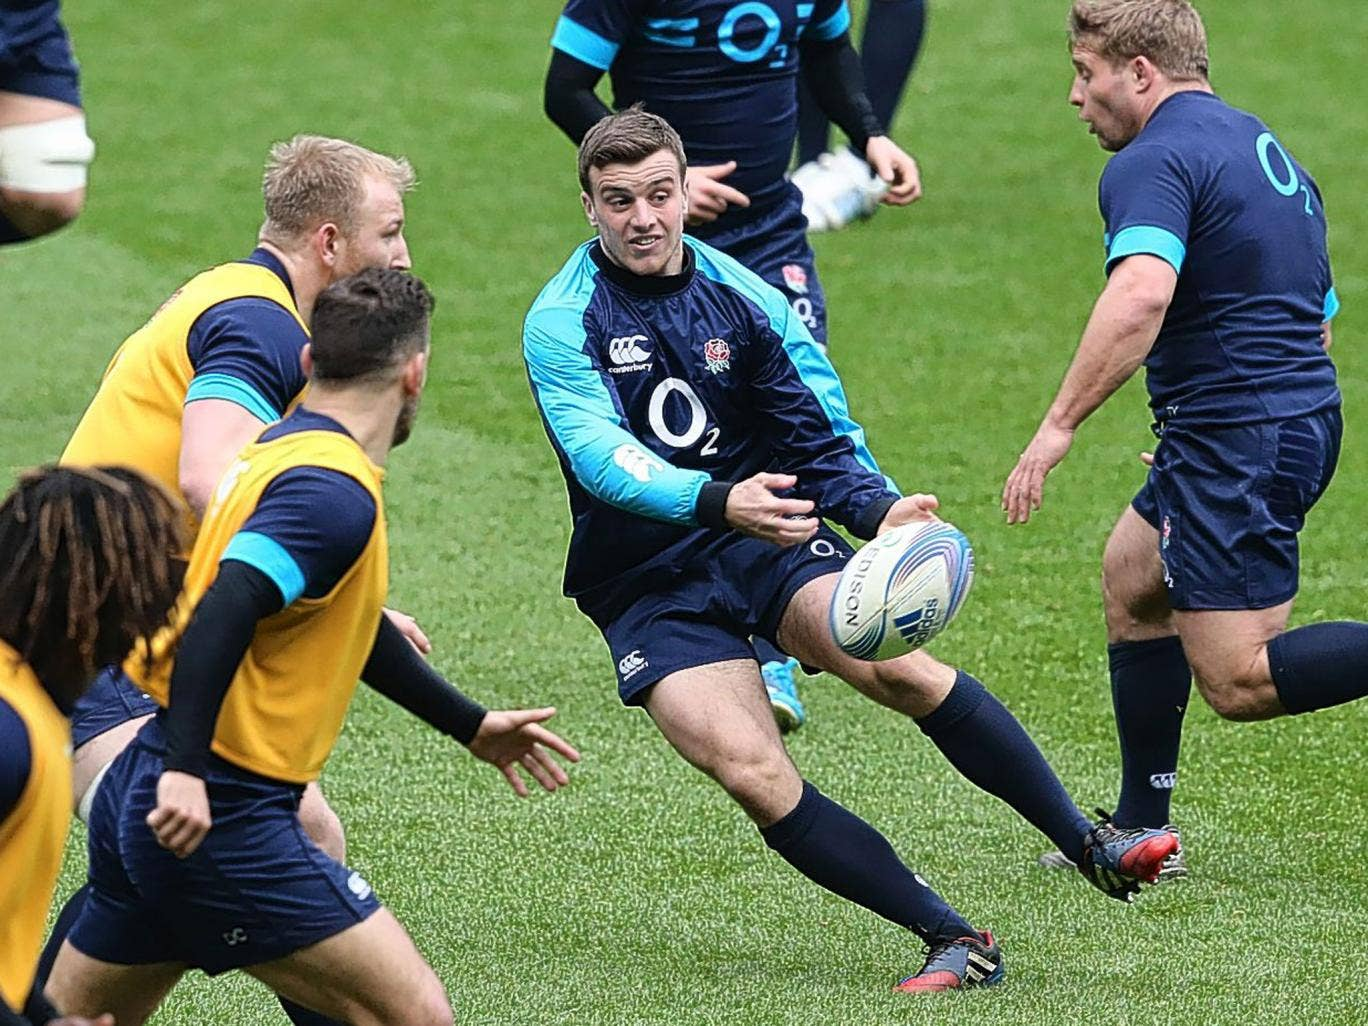 Bath fly-half George Ford trains with England. I would like to see him start against Italy to gain some experience before the New Zealand tour